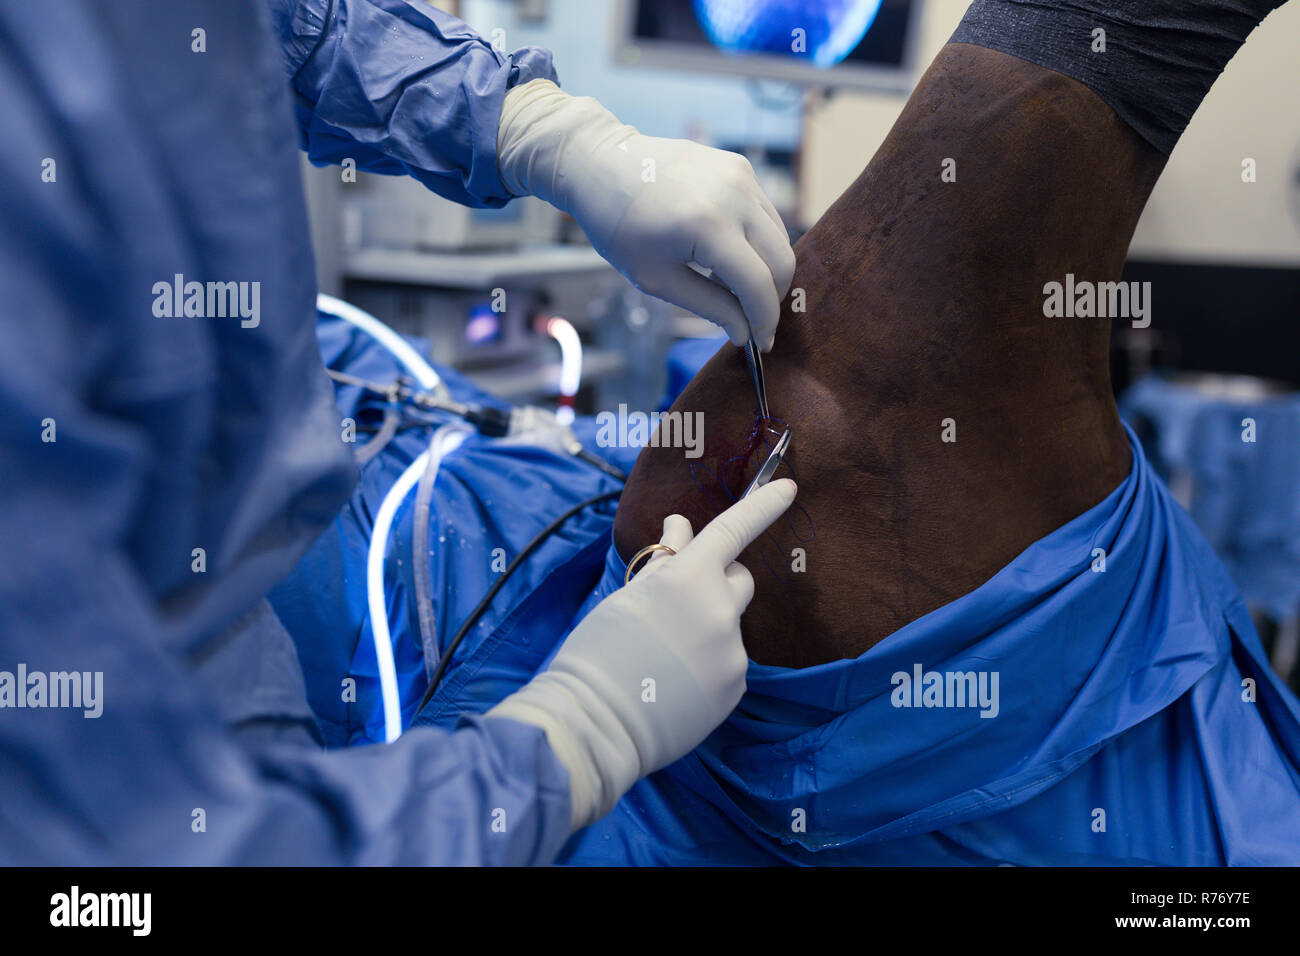 Female surgeon examining a horse in operation theatre - Stock Image